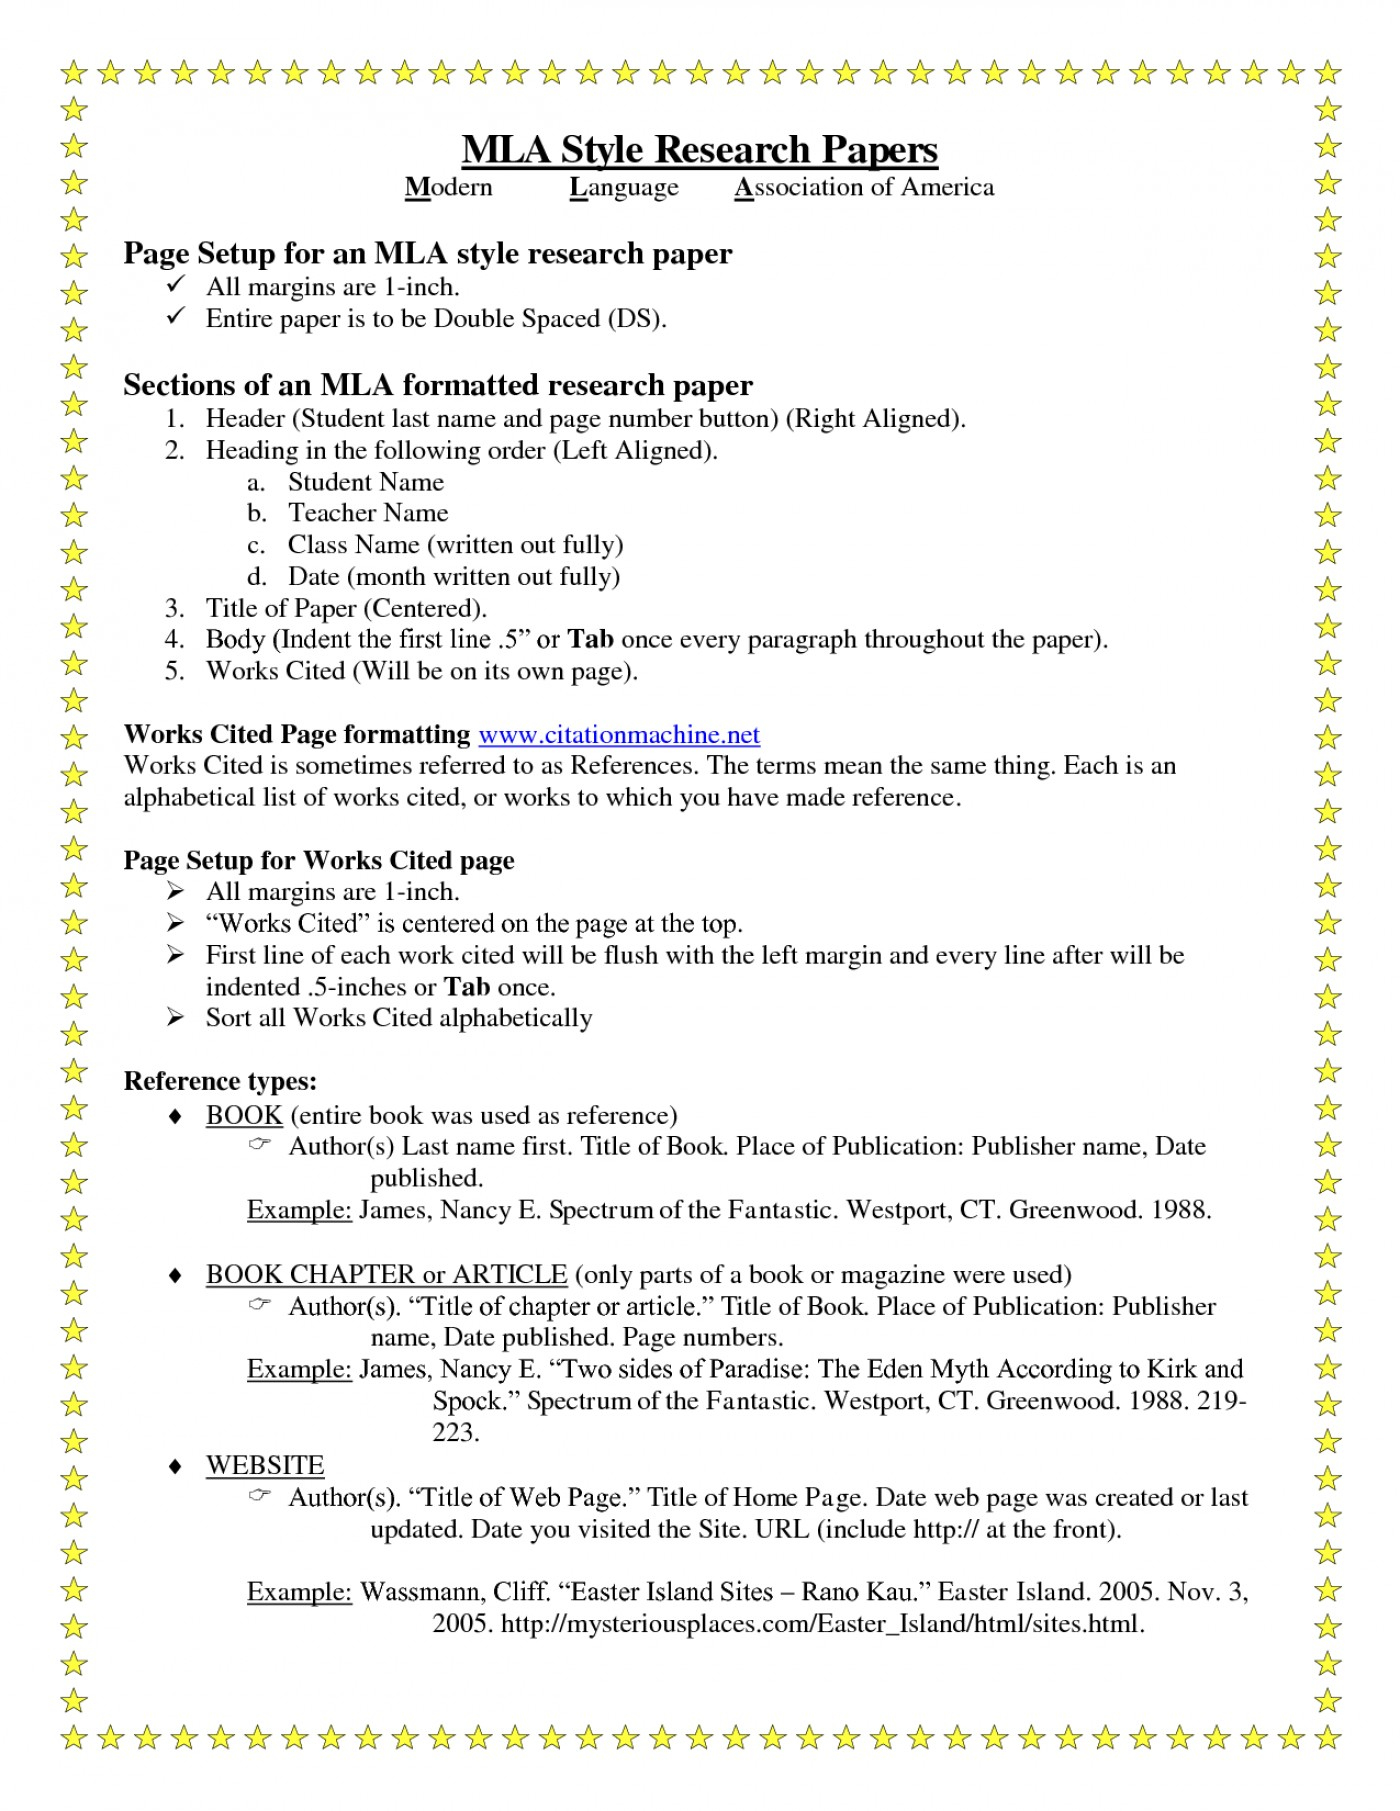 004 Research Paper Order Of Mla Headings Beautiful A Example Proposal In Format Examples Sample 1400